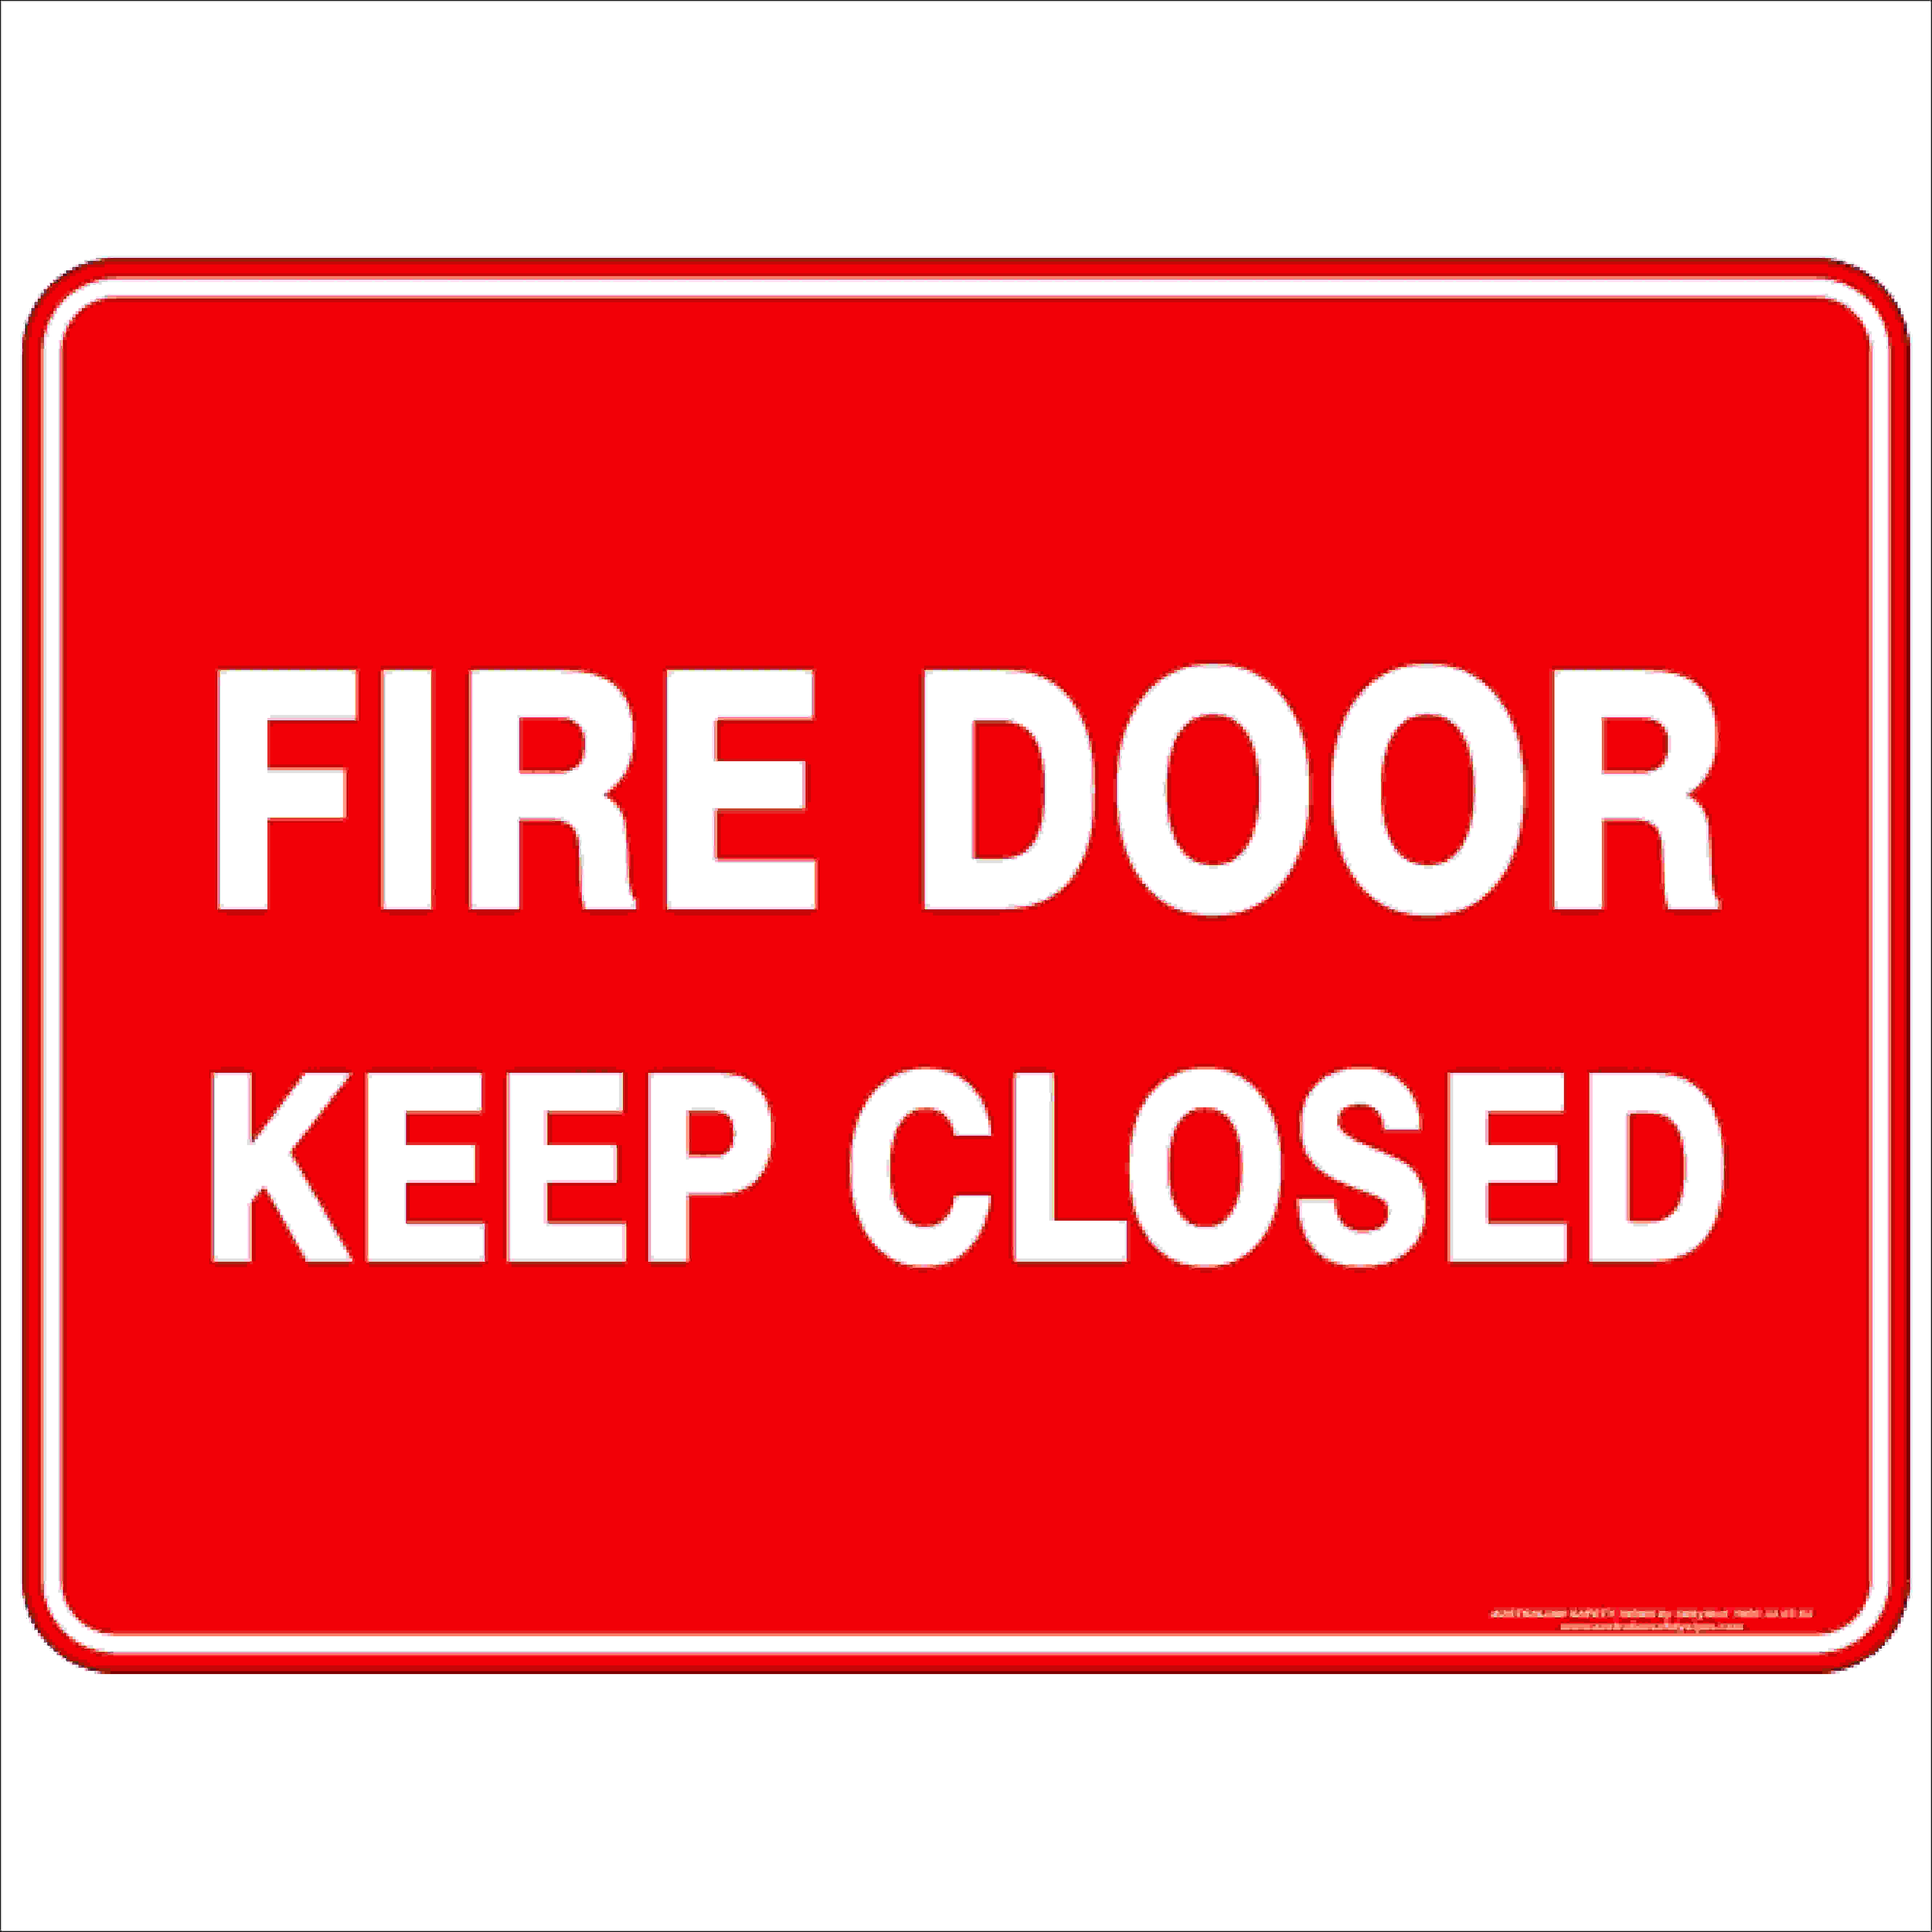 Fire Safety Signs FIRE DOOR KEEP CLOSED